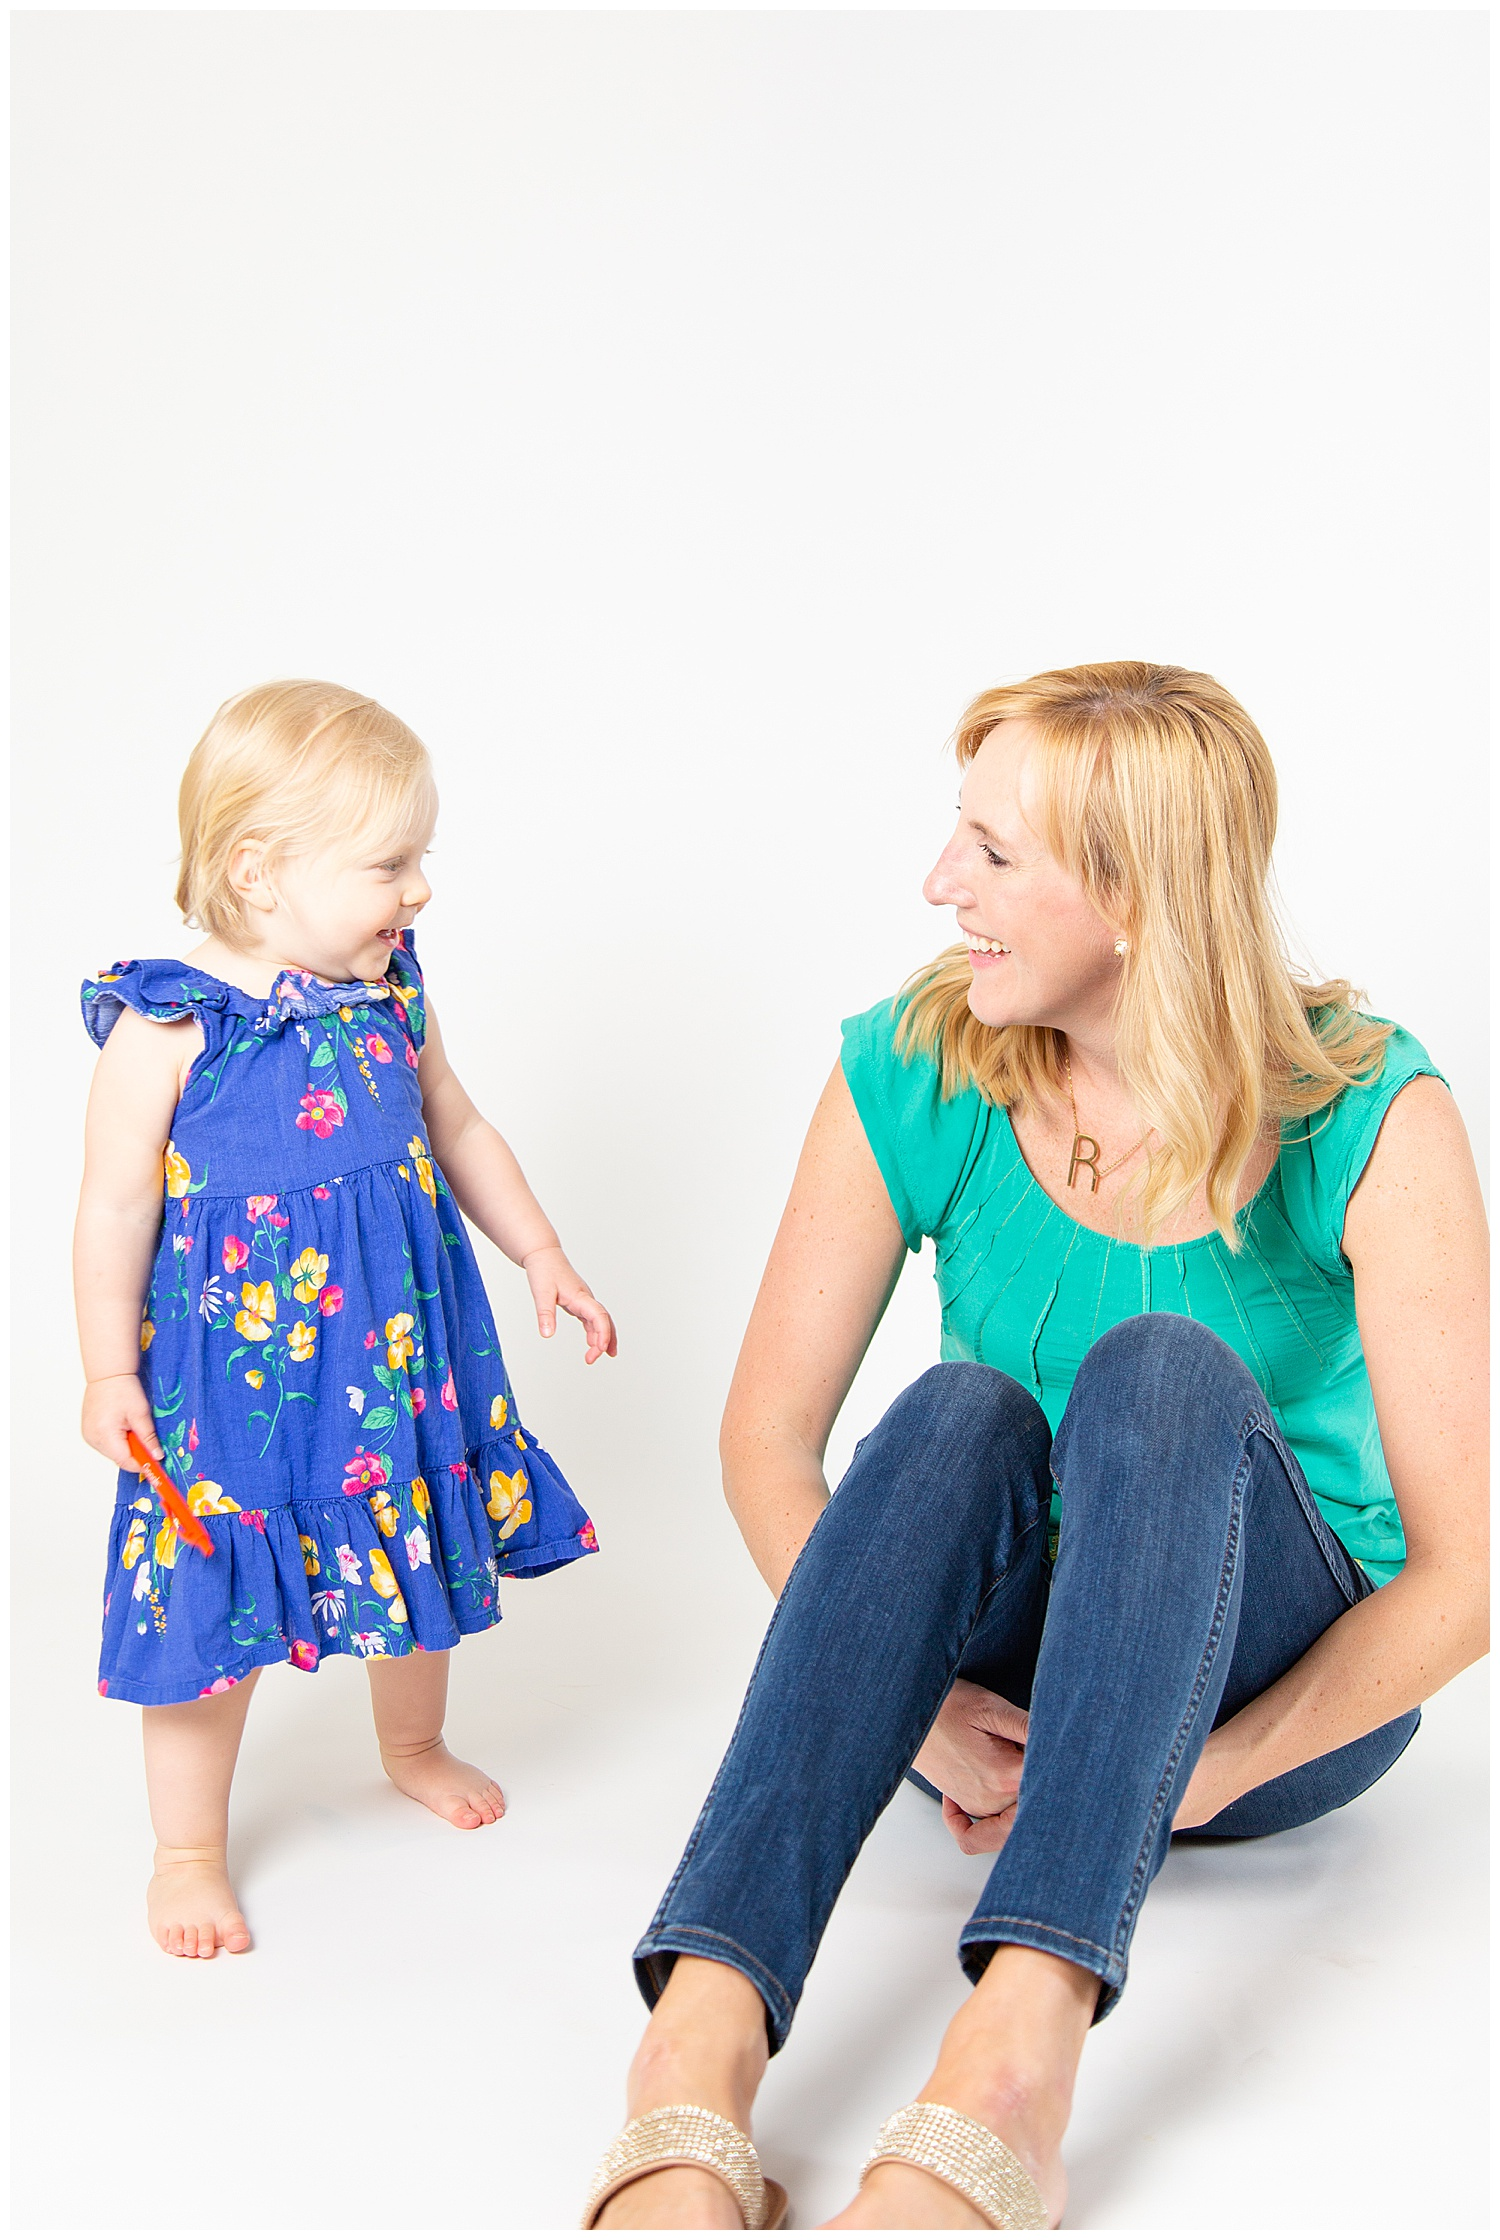 emily-belson-photography-family-session-15.jpg